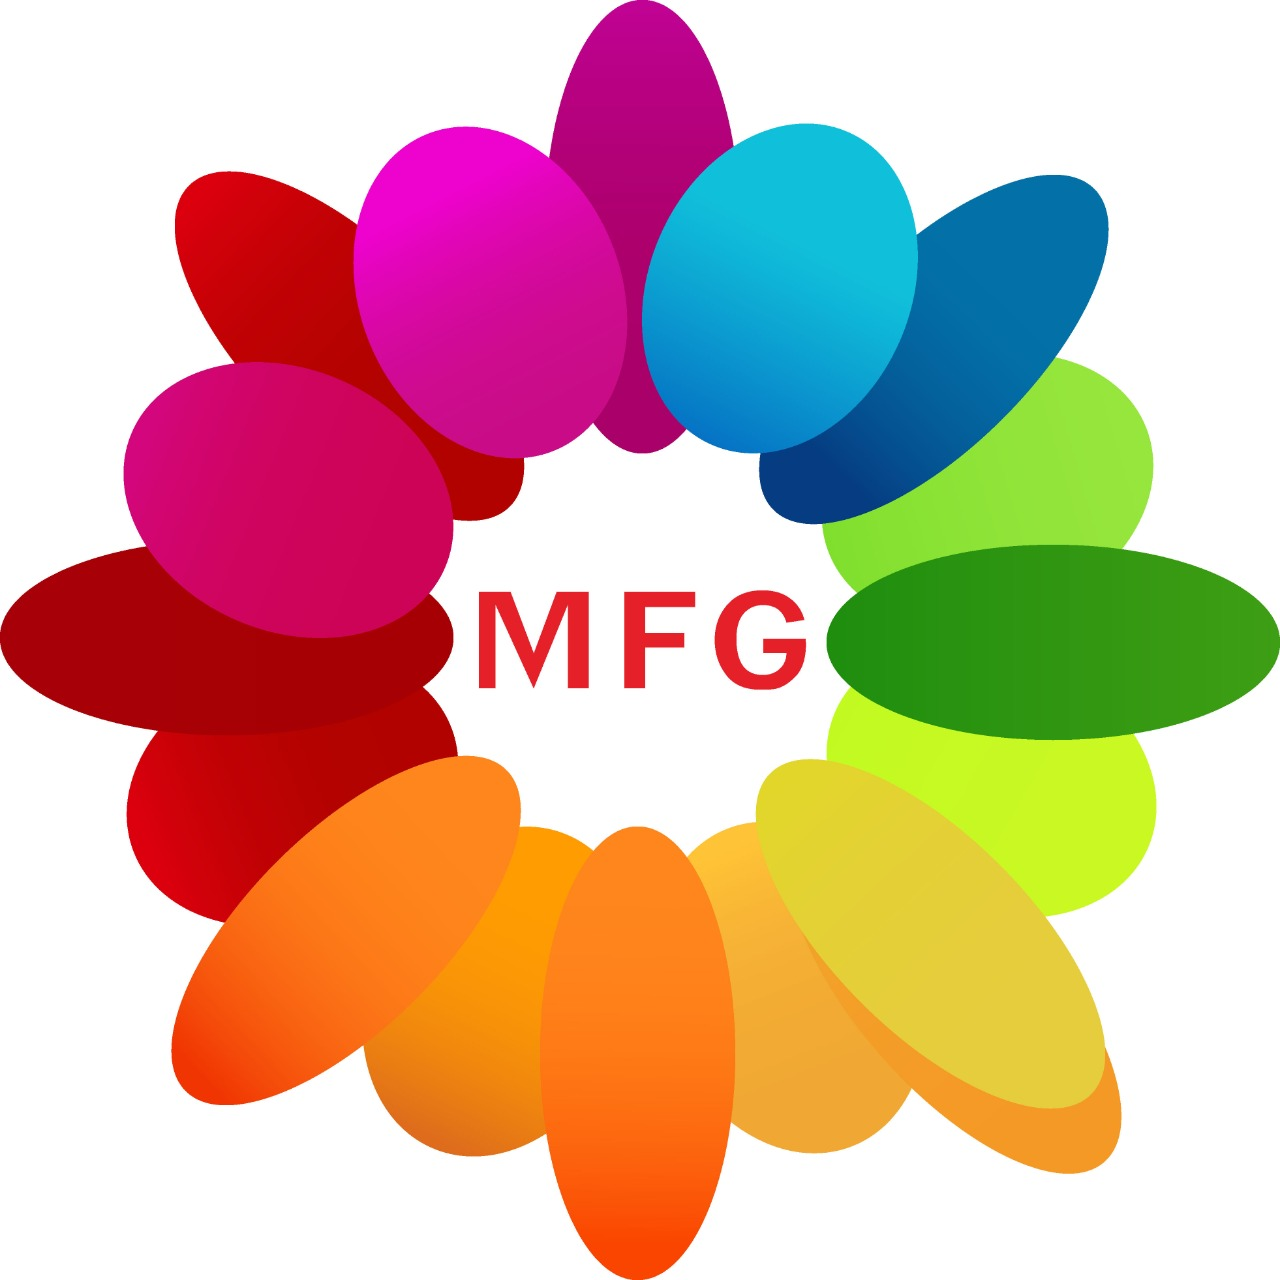 1 kg black forest(eggless) with 1 feet height teddy bear with single red rose